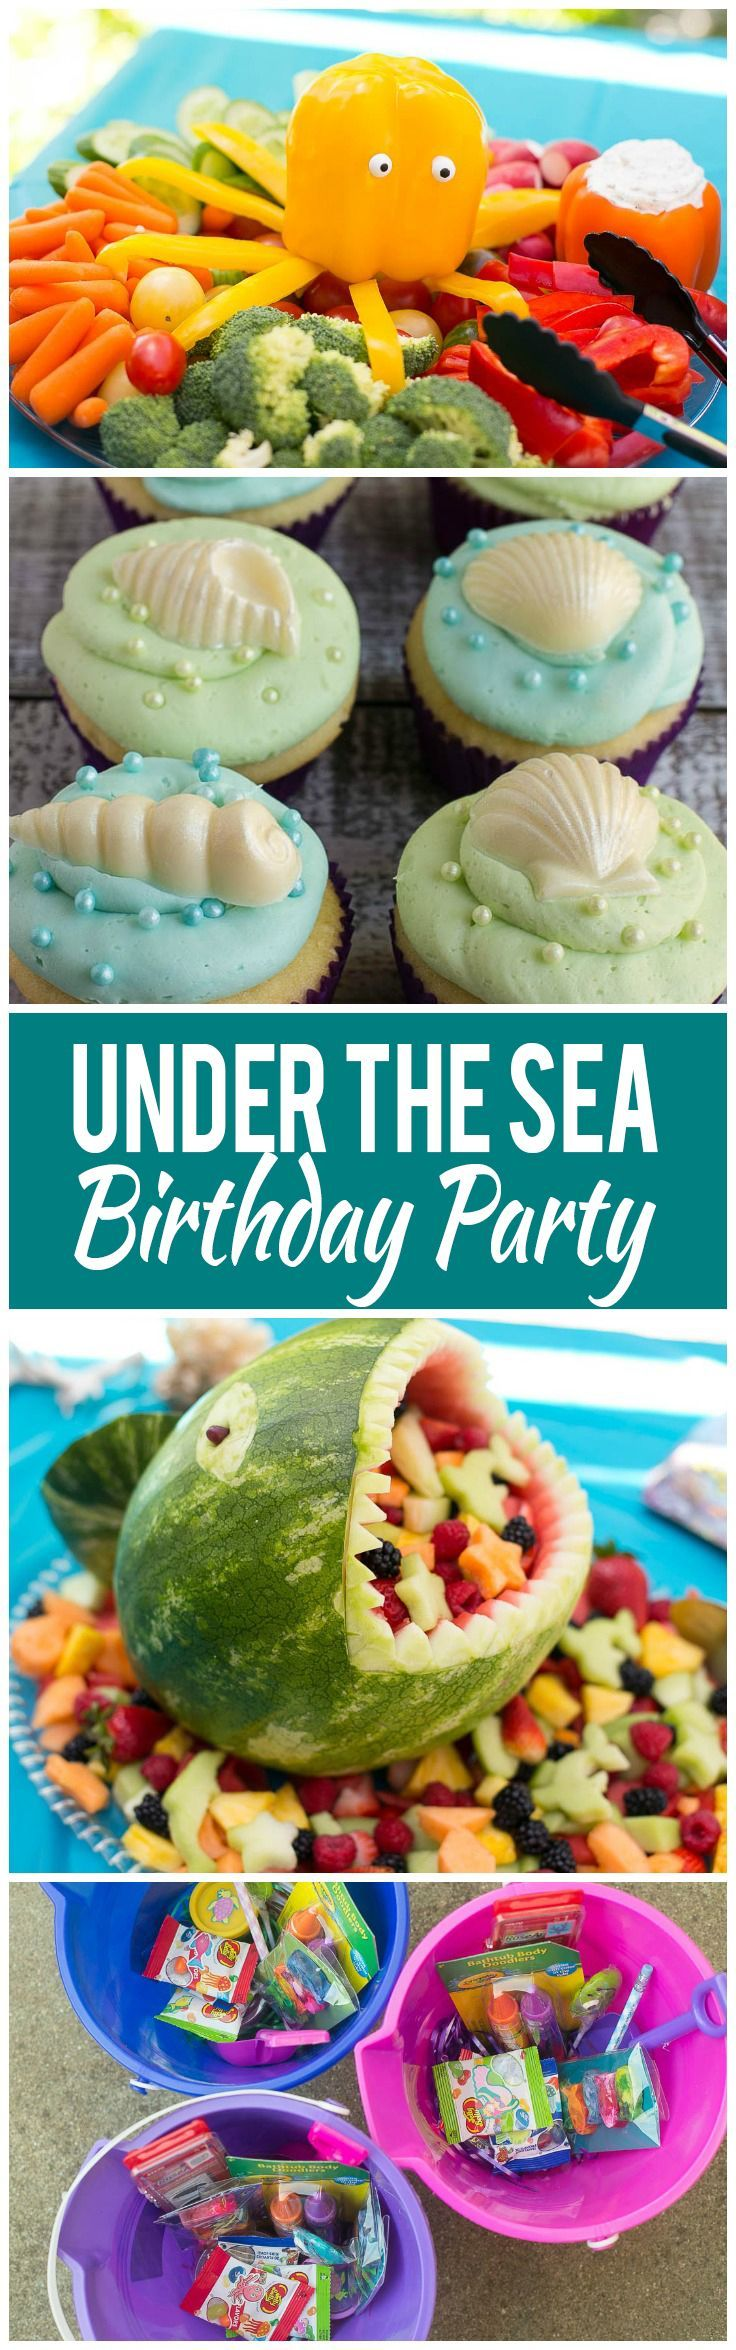 A complete guide on how to throw an under the sea birthday party with an under the sea theme, including ideas for food, activities and party favors.